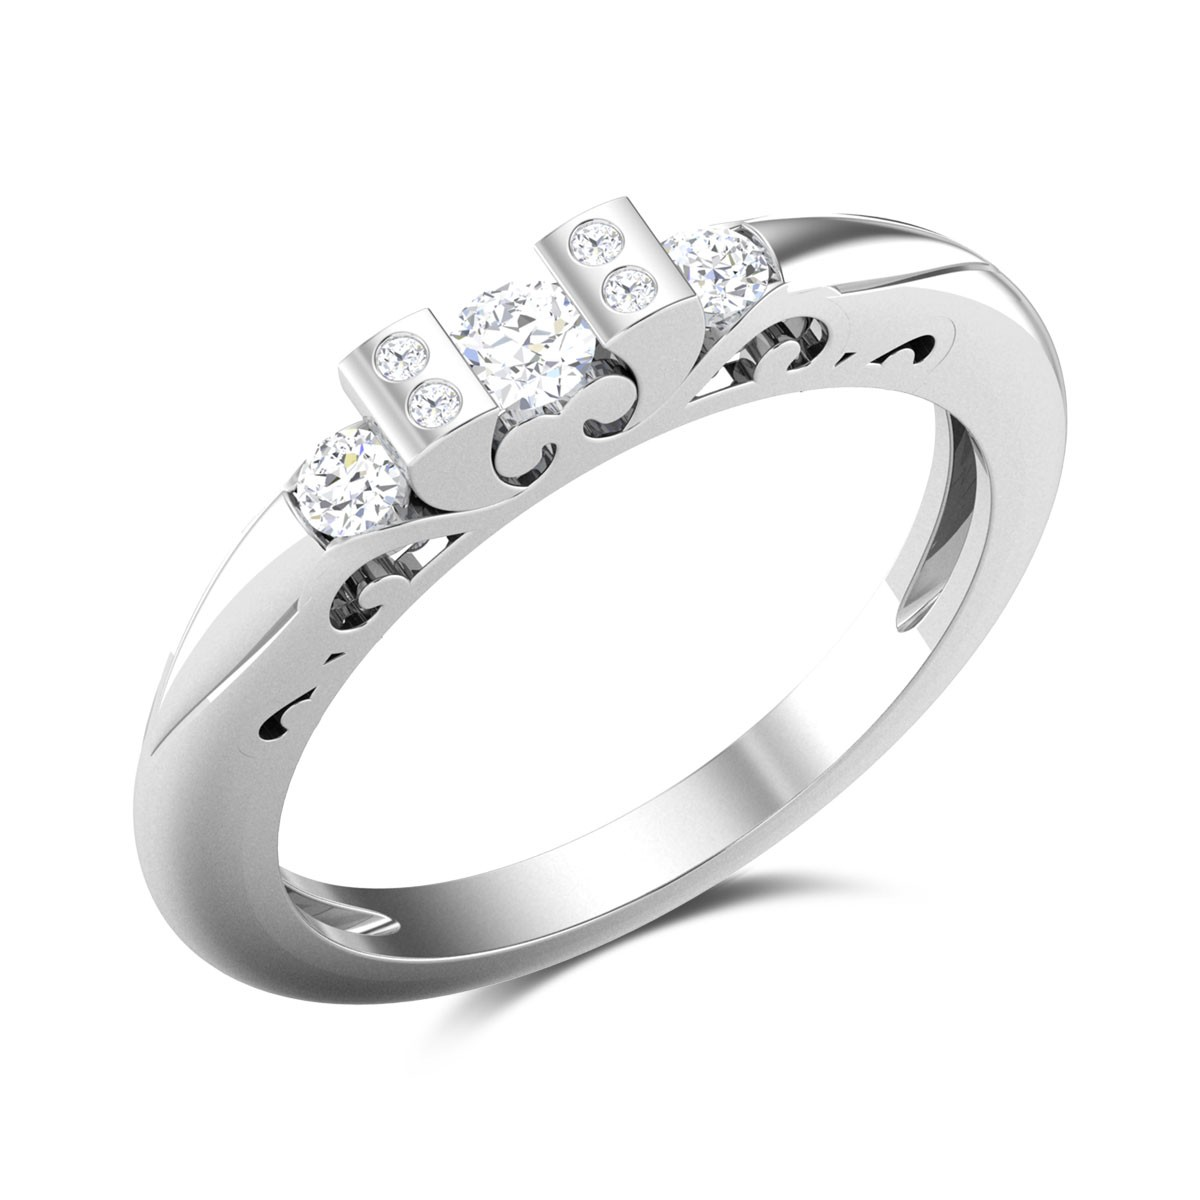 Purcell Siamond Ring